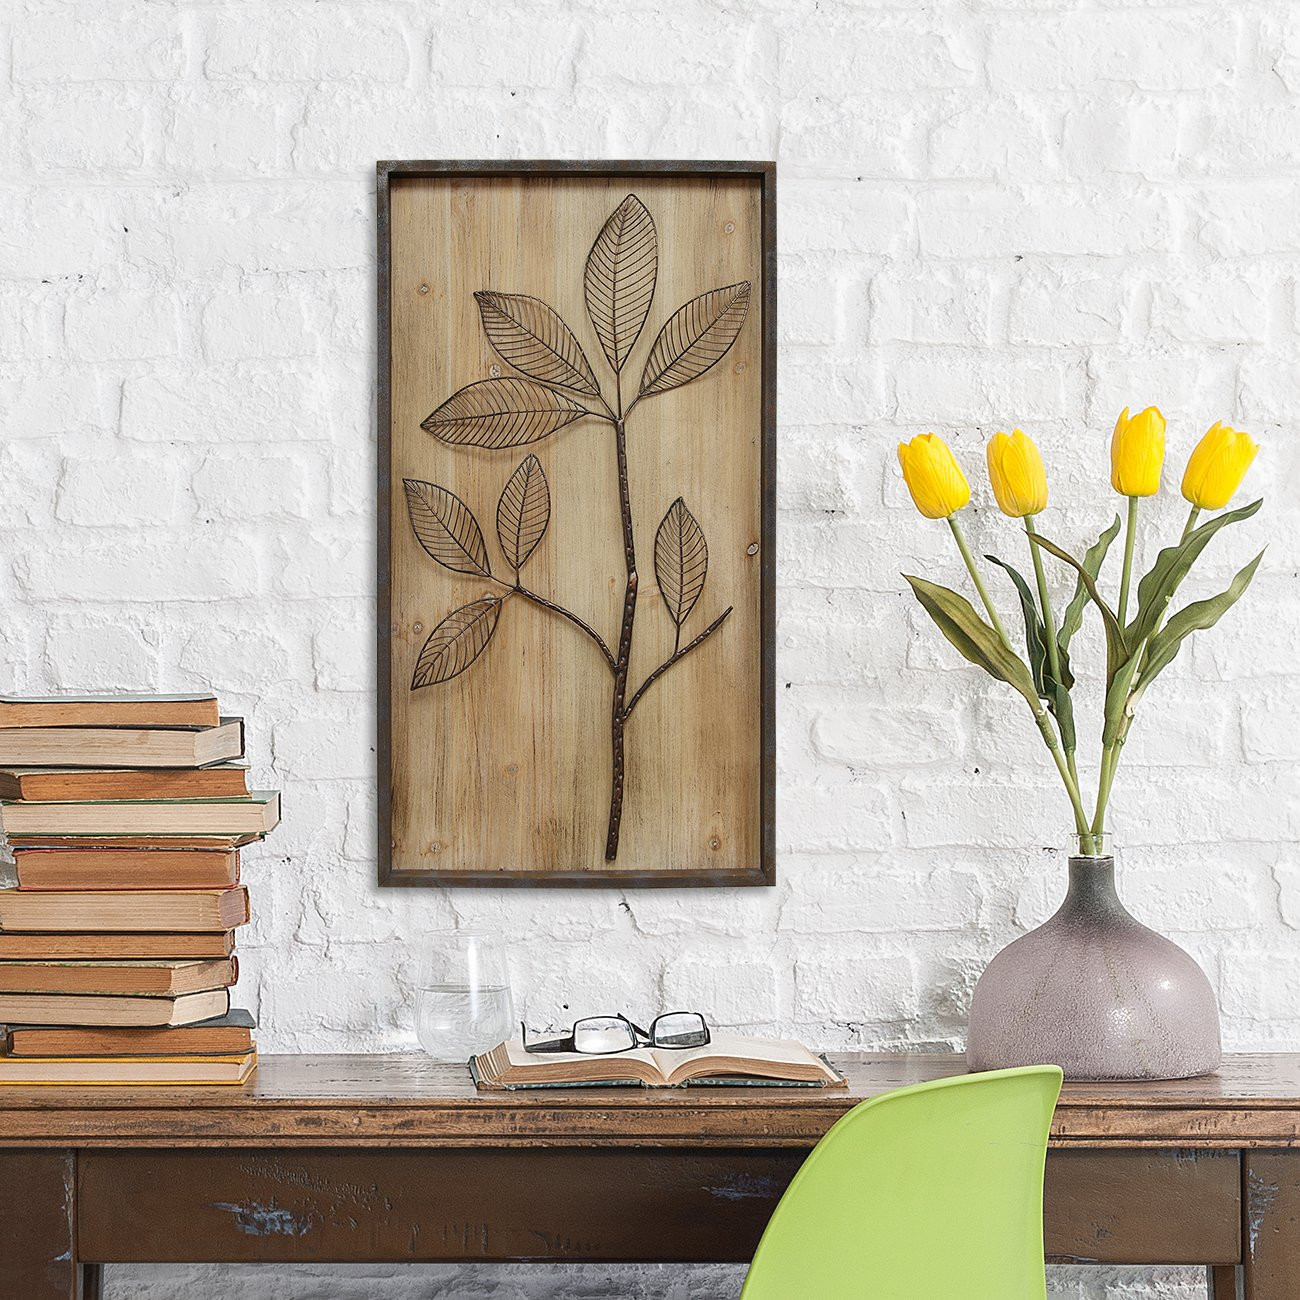 Best ideas about Wayfair Wall Art . Save or Pin Stratton Home Decor Rustic Branch Wall Décor & Reviews Now.